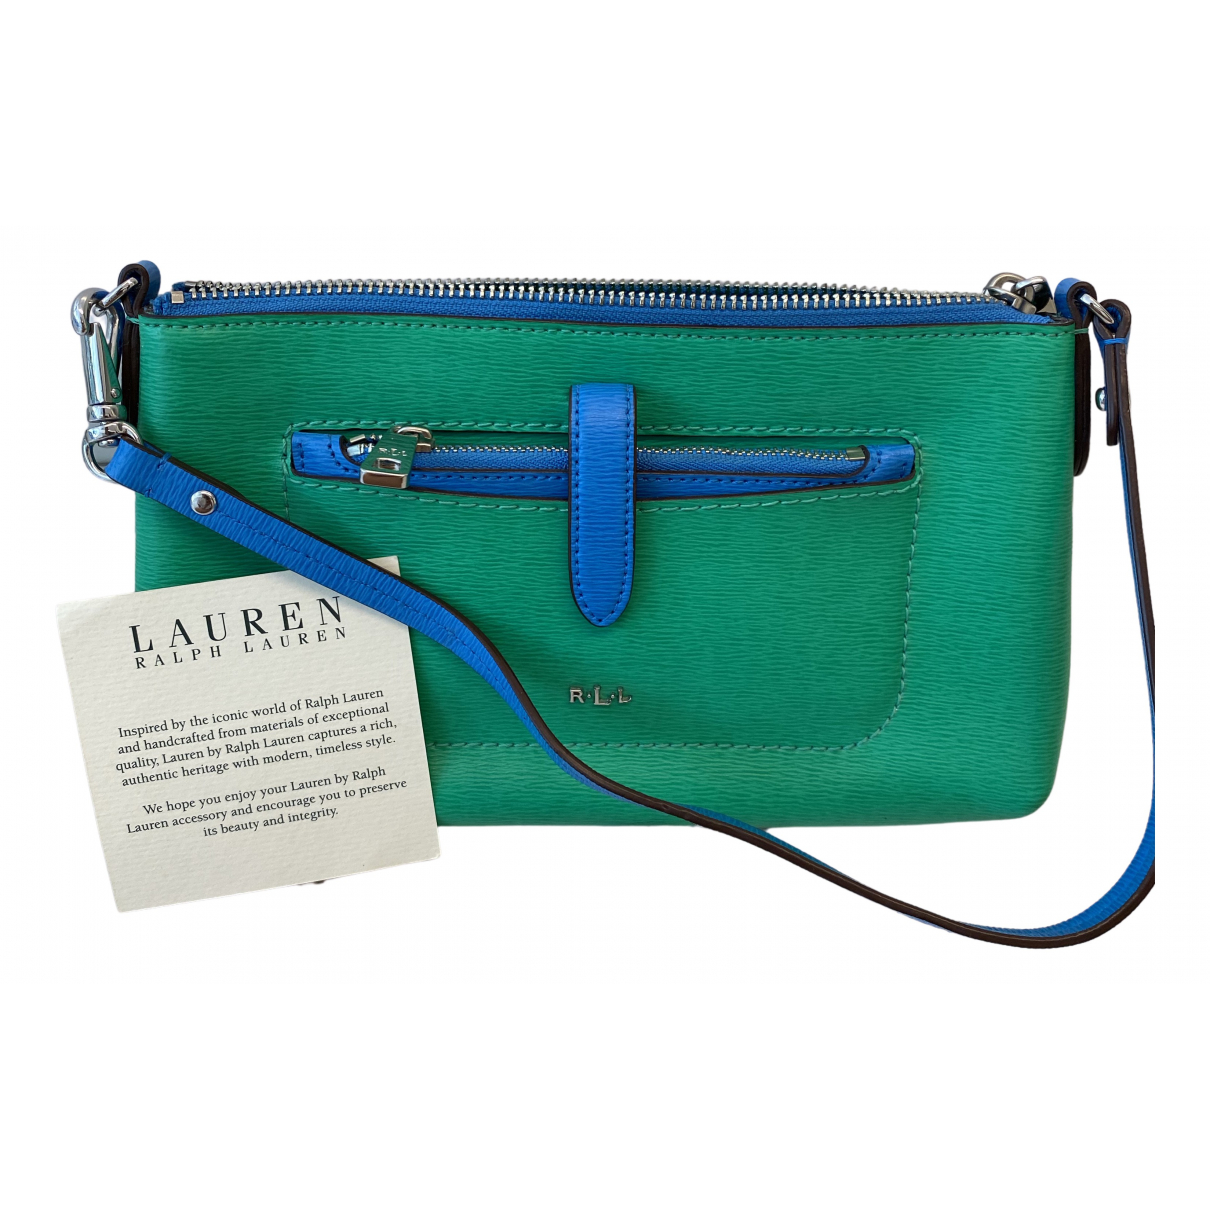 Lauren Ralph Lauren \N Green Leather handbag for Women \N